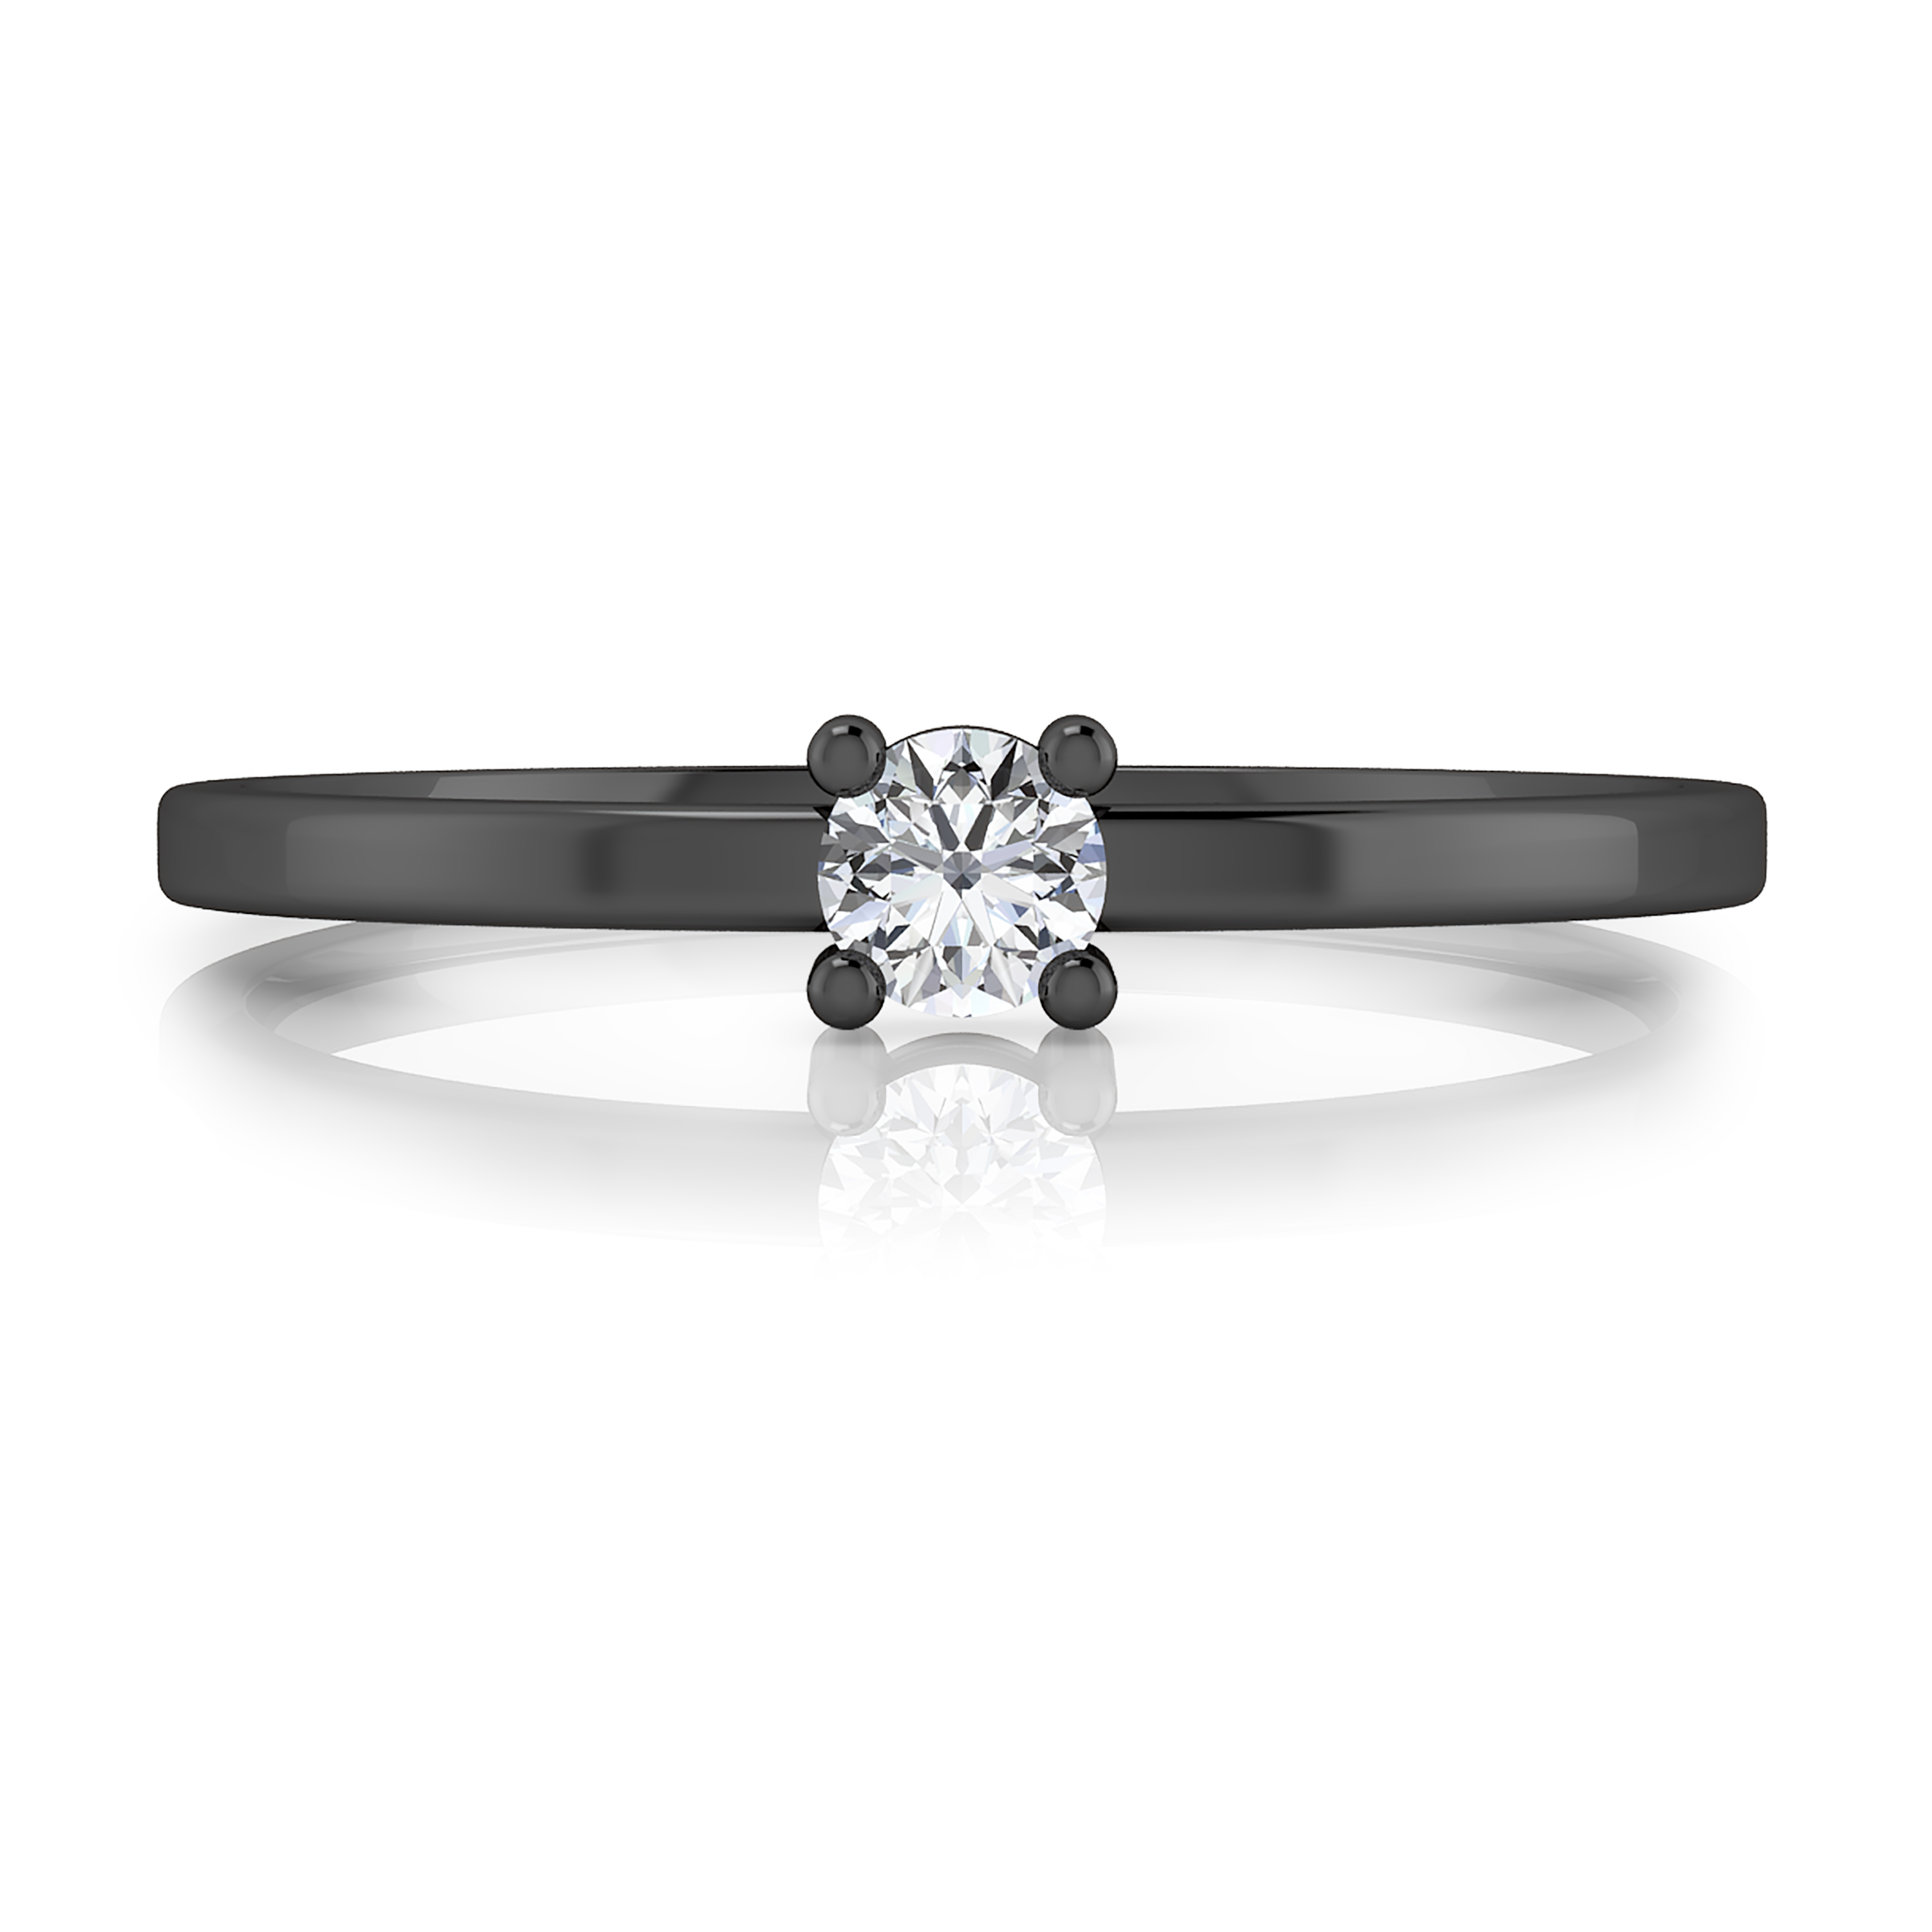 18kt black gold solitaire ring with a round cut shape diamond, stylized arms and glossy finish.